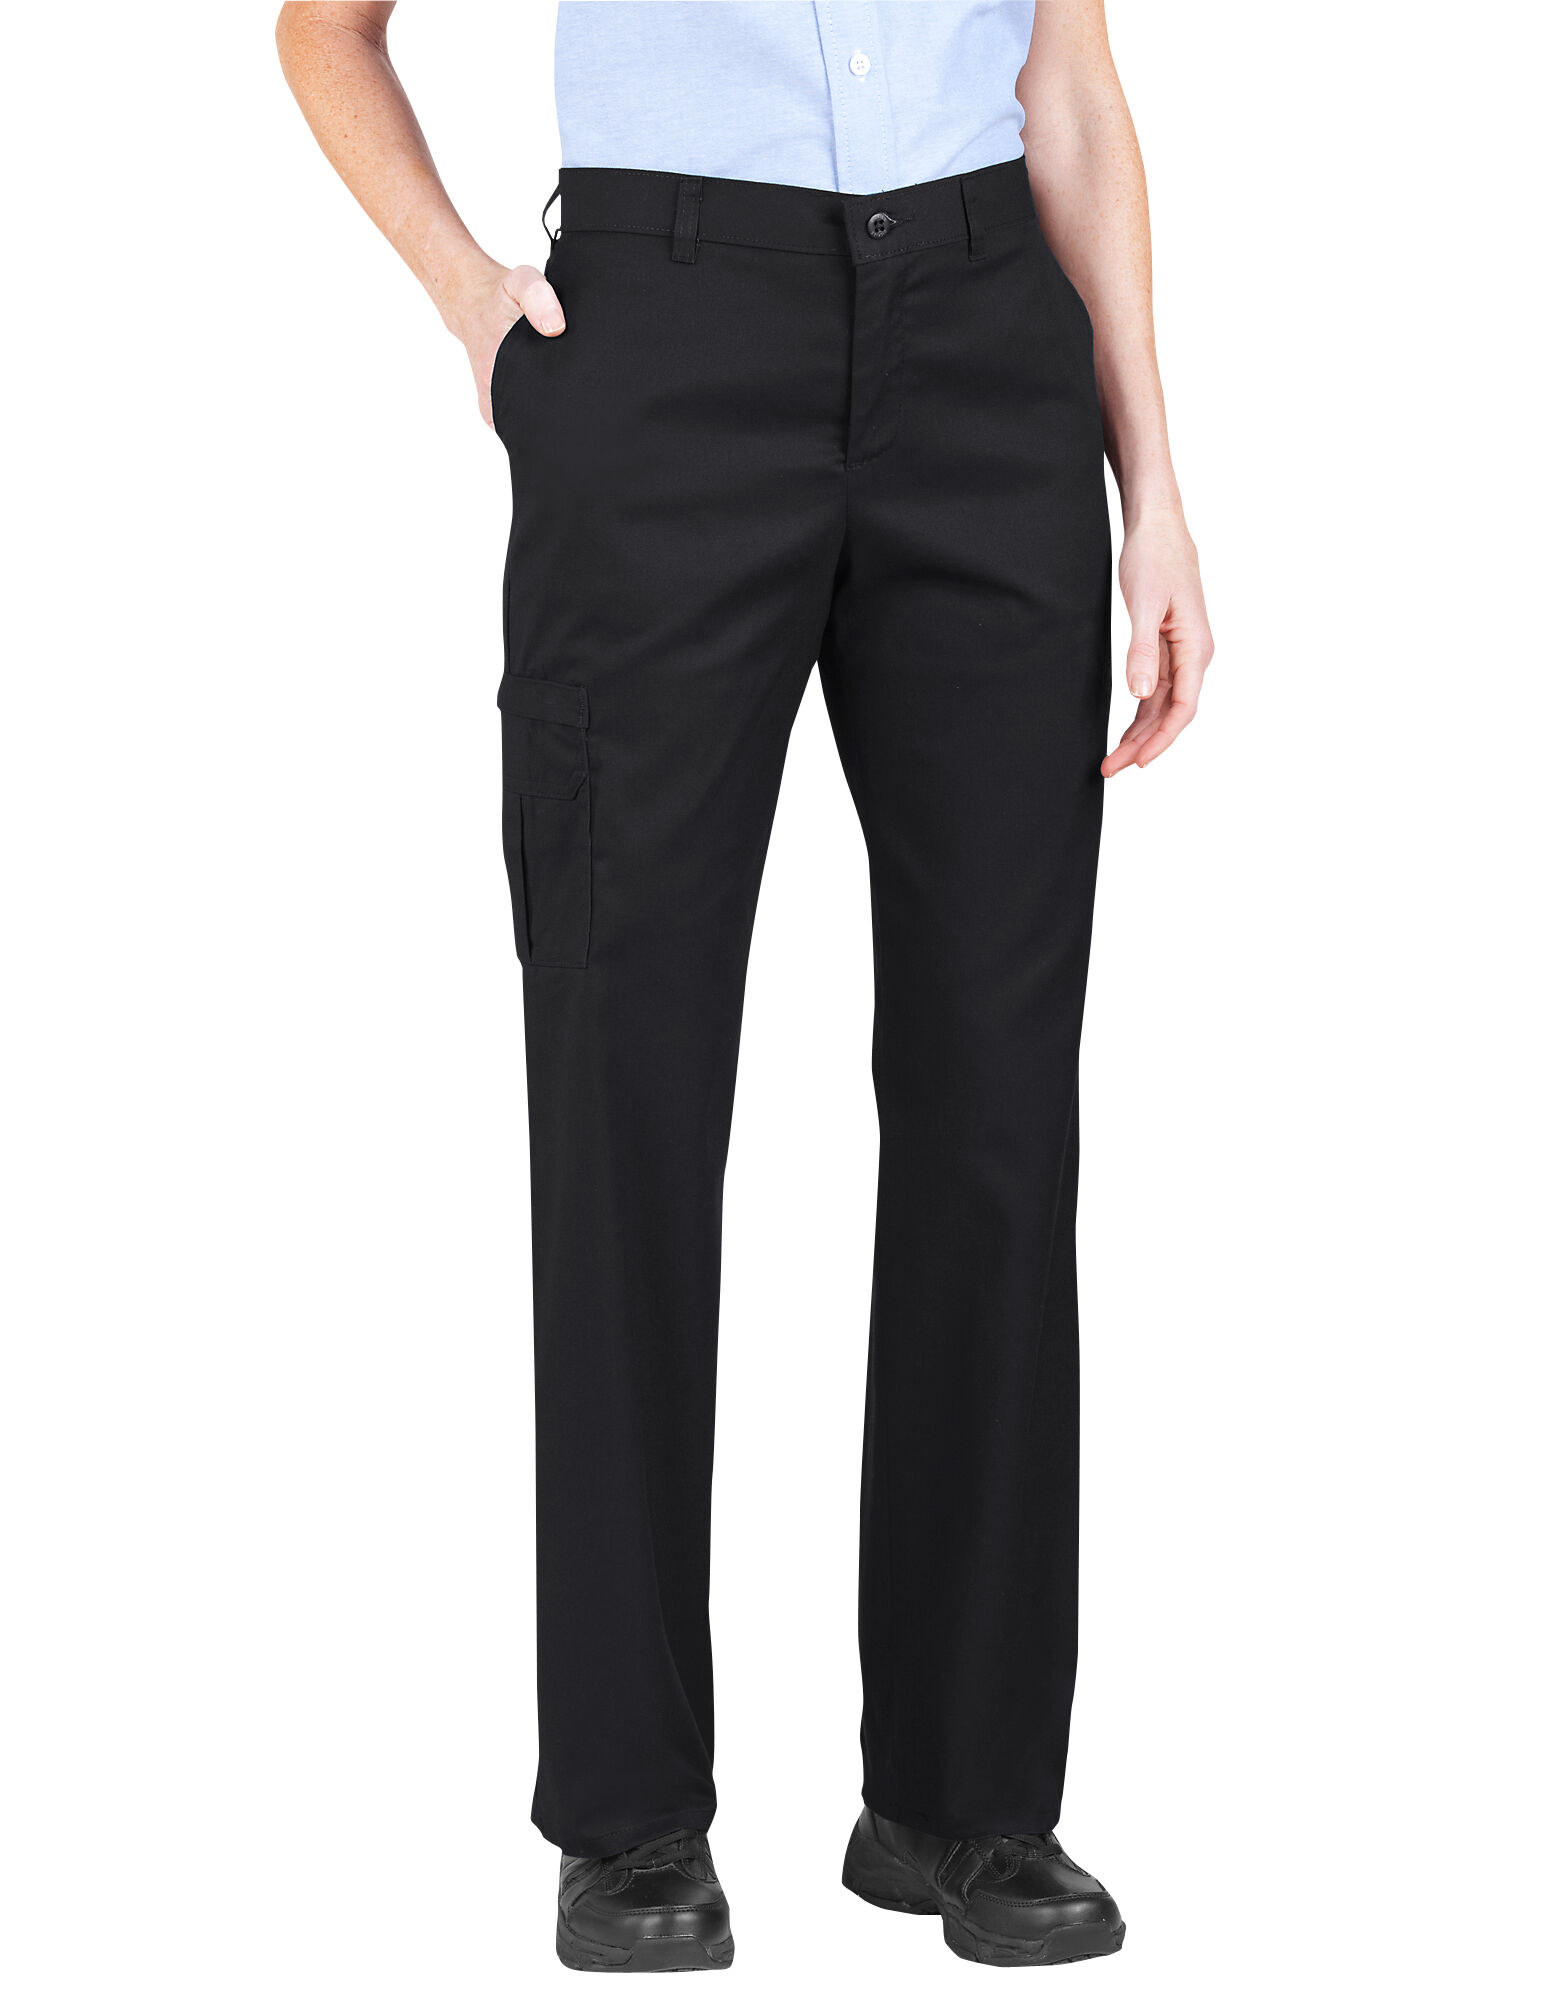 Women's Premium Relaxed Straight Cargo Pant | Dickies